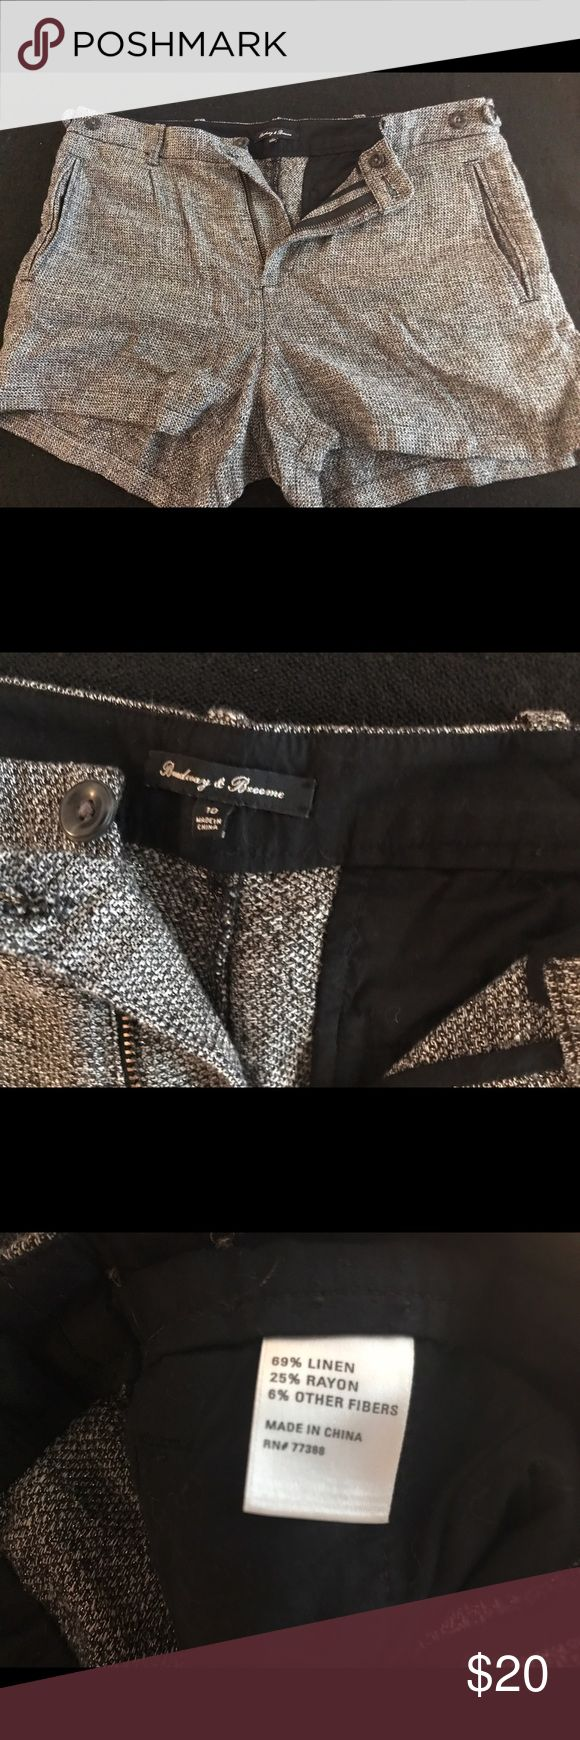 EUC Madewell Size 10 gray sparkly shorts EUC These Broadway and Broome brand (bought at Madewell) cute gray sparkly shorts are size 10. These have been worn once, no missing buttons or signs of wear. Useable pockets, and cute button detail on waistband. Madewell Shorts